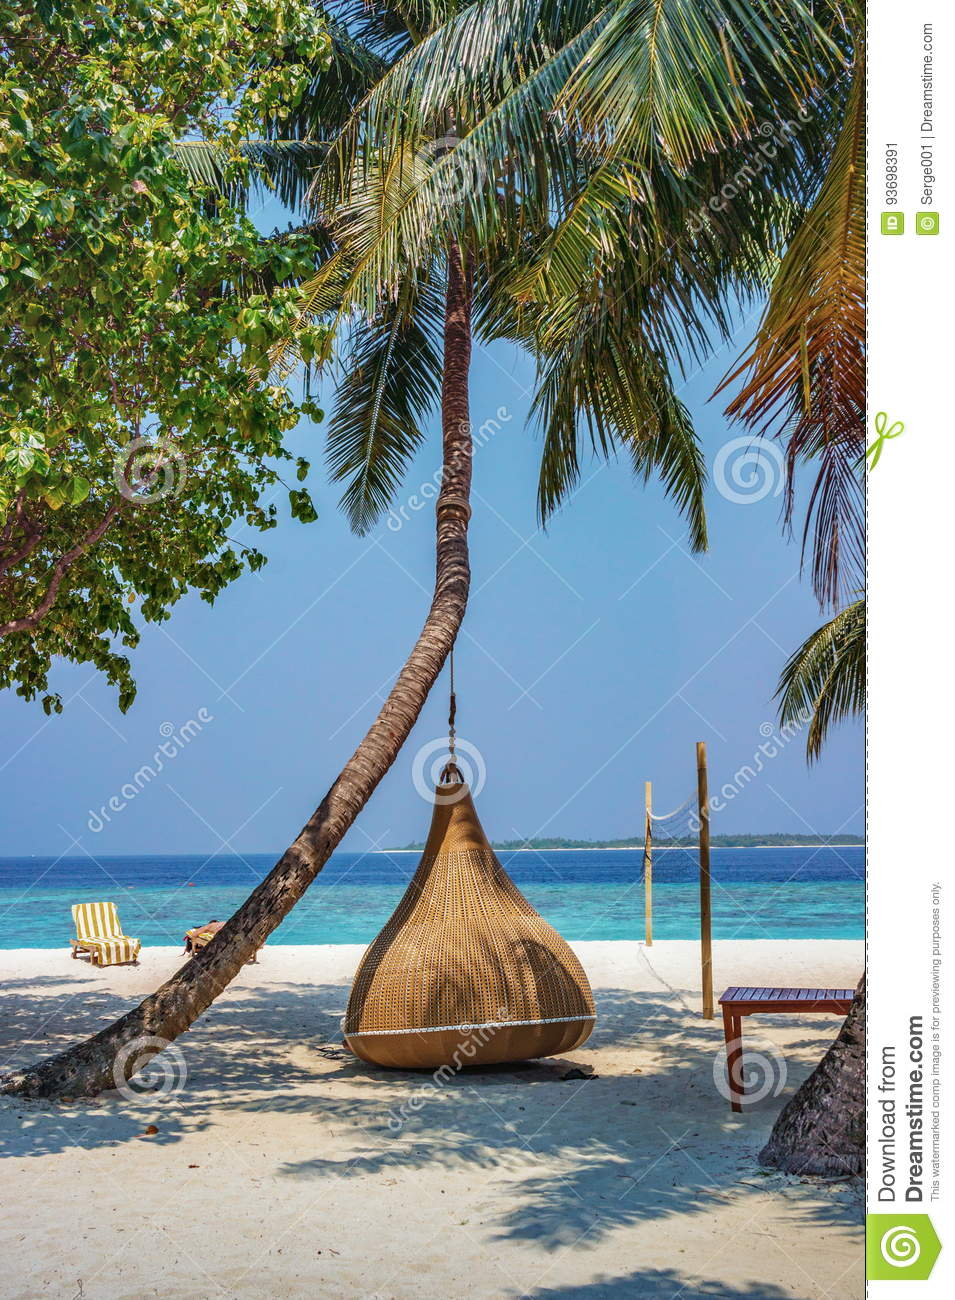 Hanging Chair Under The Palm Tree On A Beach At Maldives